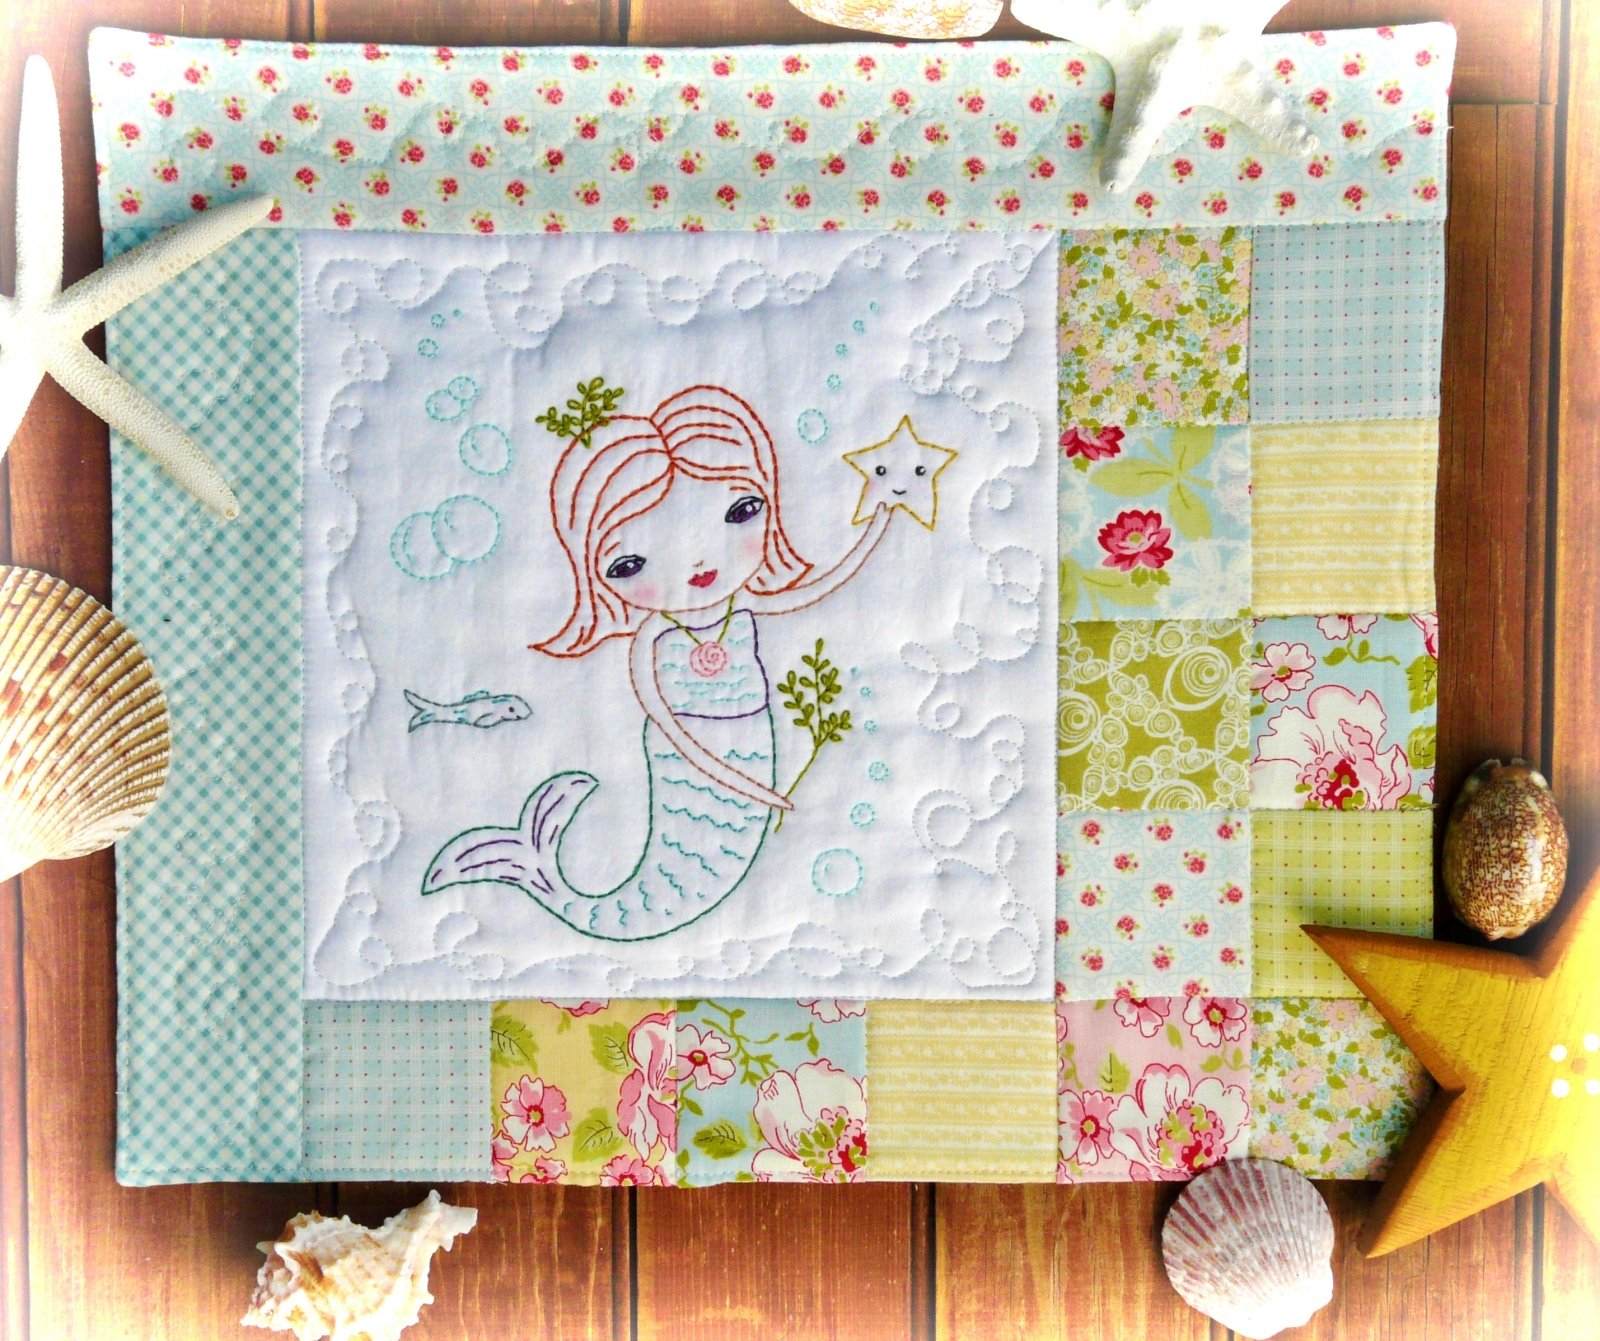 Hudson's Holidays - The Merry Mermaid Embroidery Mini Quilt